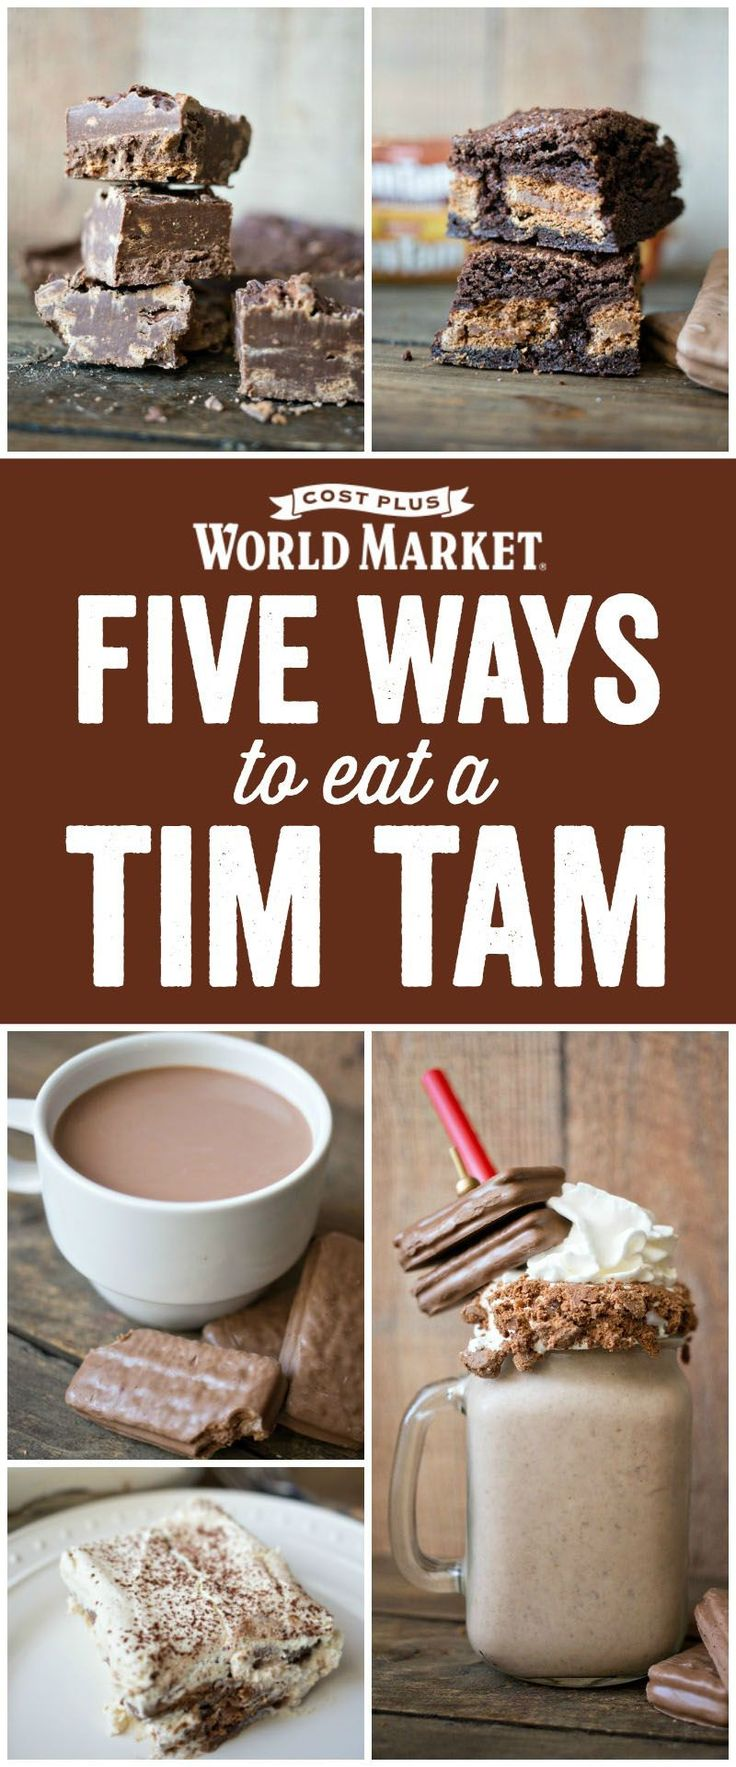 5 delicious Tim Tam Recipes by Kimberly of A Night Owl Blog created exclusively for Discover, a blog by World Market #DiscoverWorldMarket